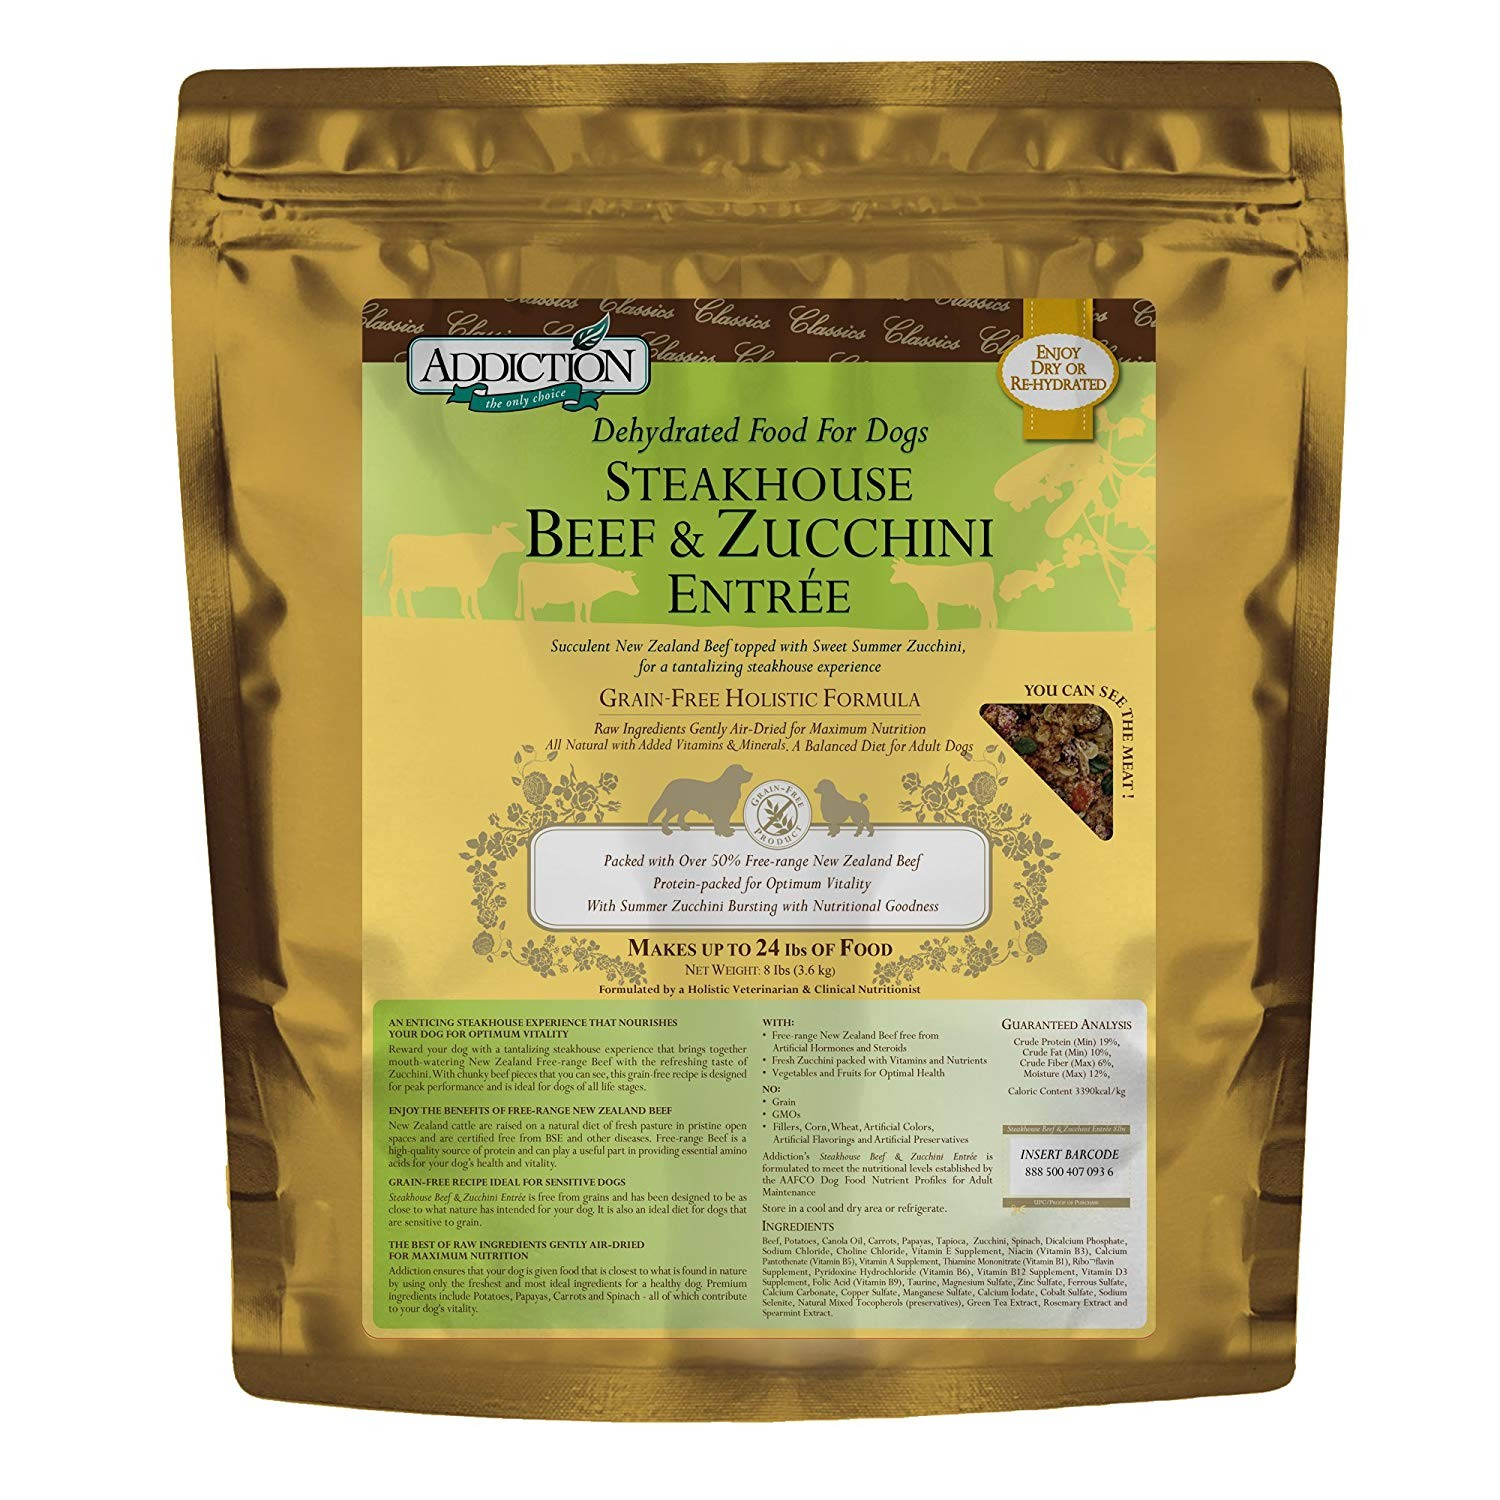 30b81608efd91 Addiction Dehydrated Classics Steakhouse Beef & Zucchini Entree - 8lbs -  Dehydrated - Food Centre - Dog - Online Store | Pets Kampong - Premium Pet  Products ...